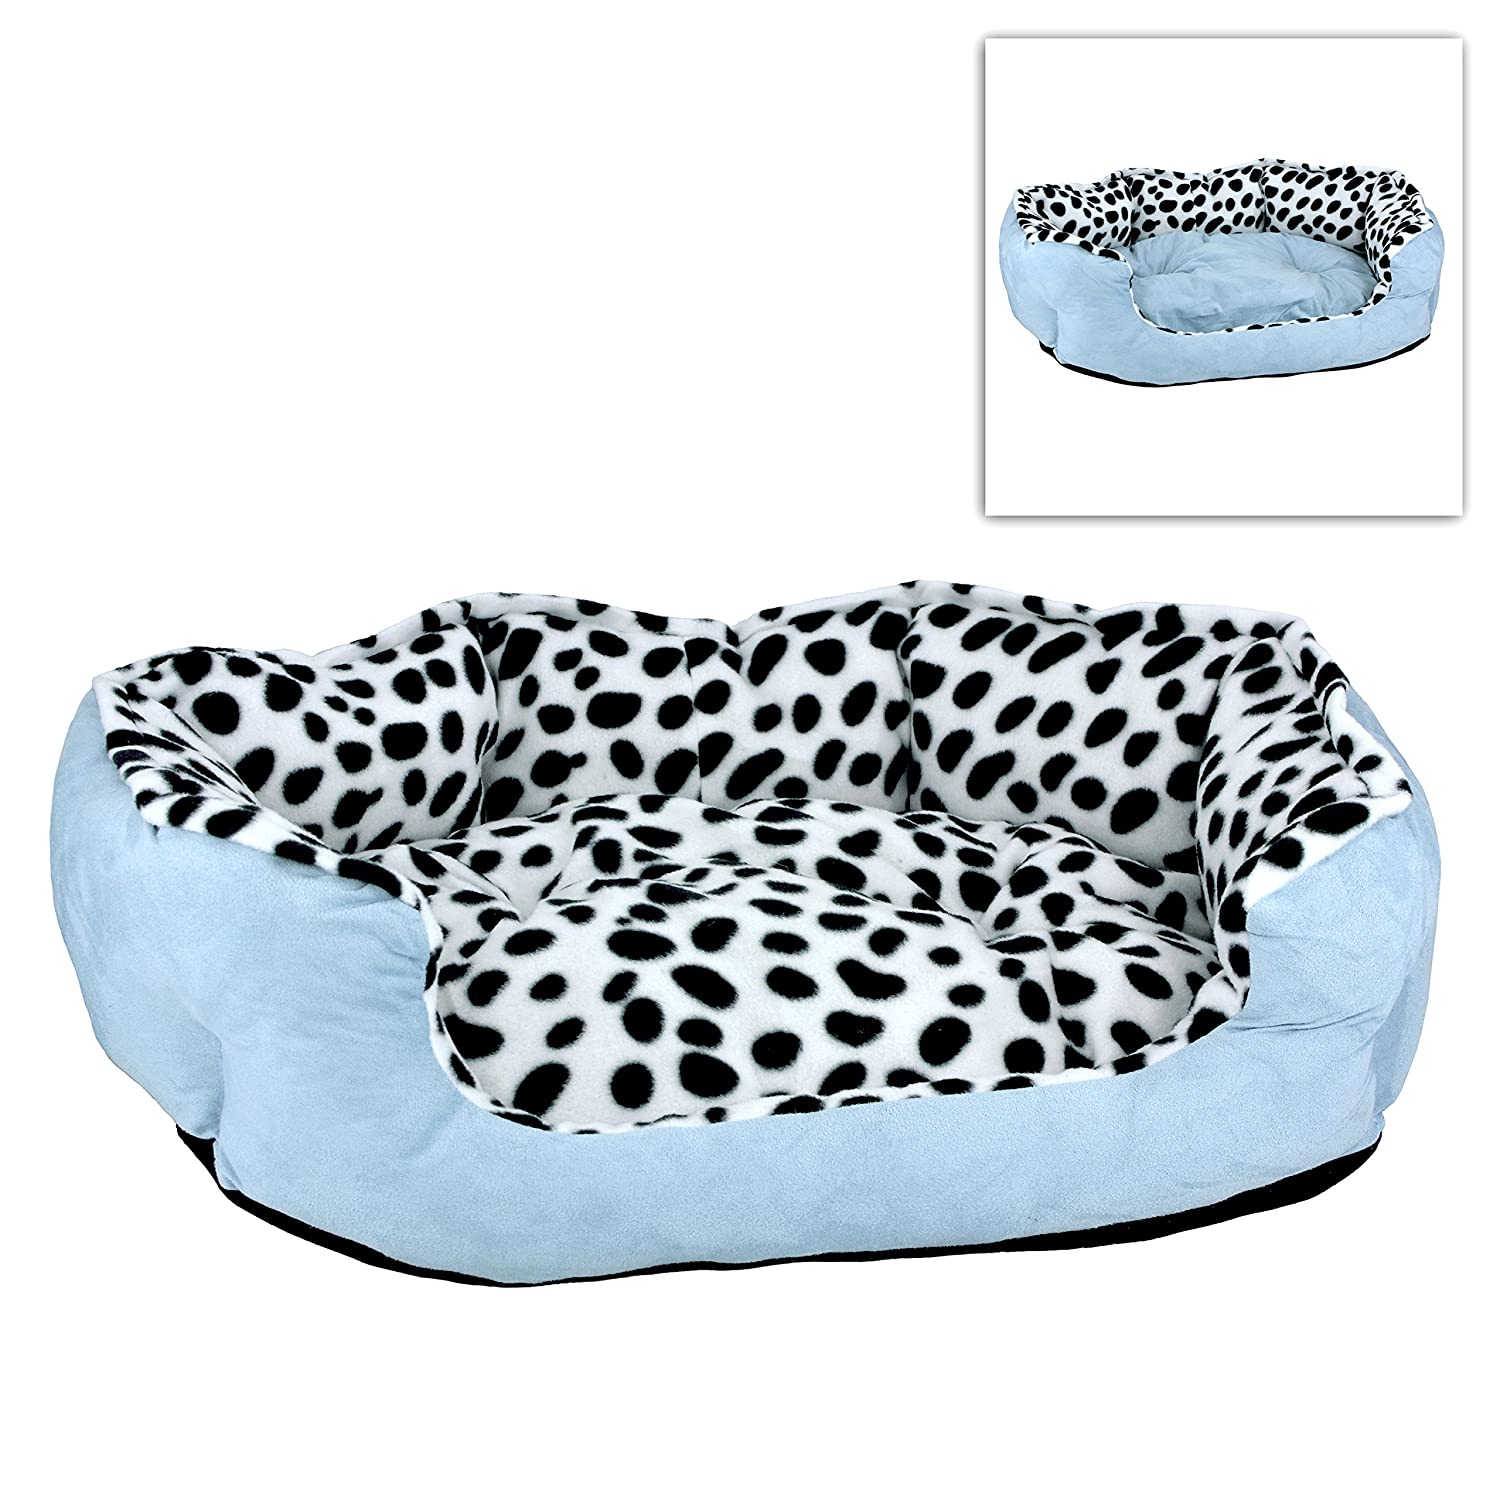 Soft Dalmatian Spotted Pattern Pet Dog Bed / Lounger Sofa with Reversible Pillow